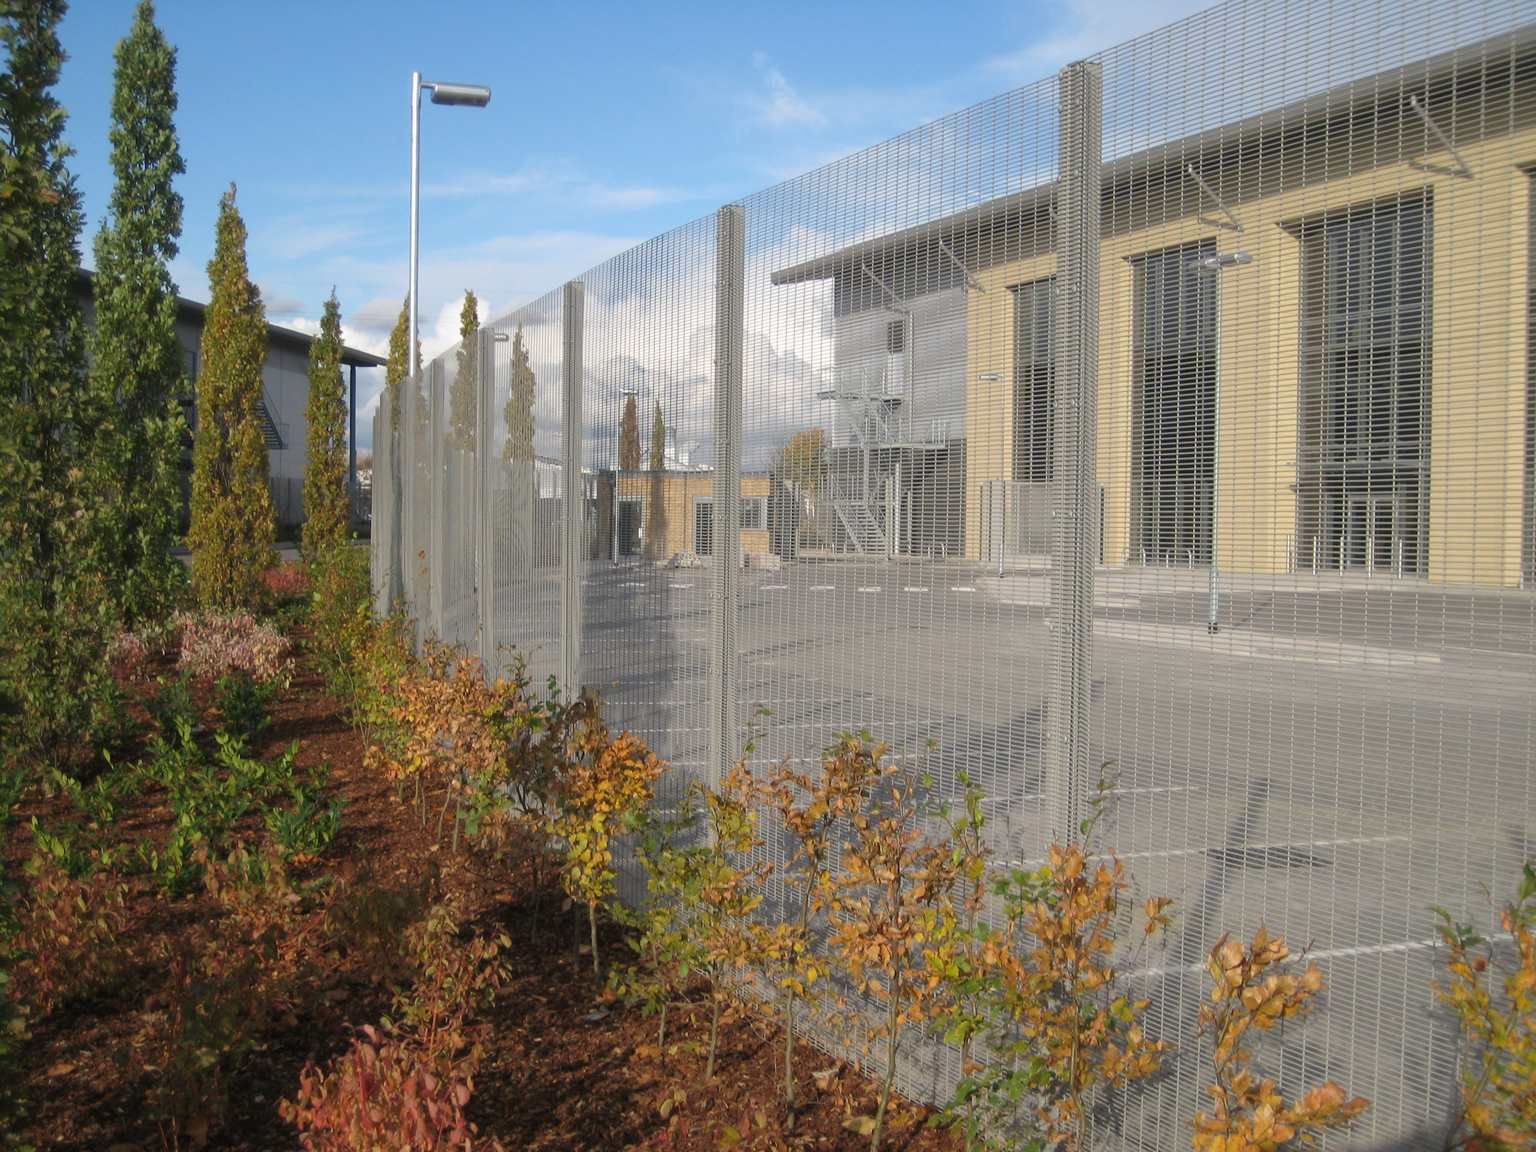 Commercial-Security-Fencing